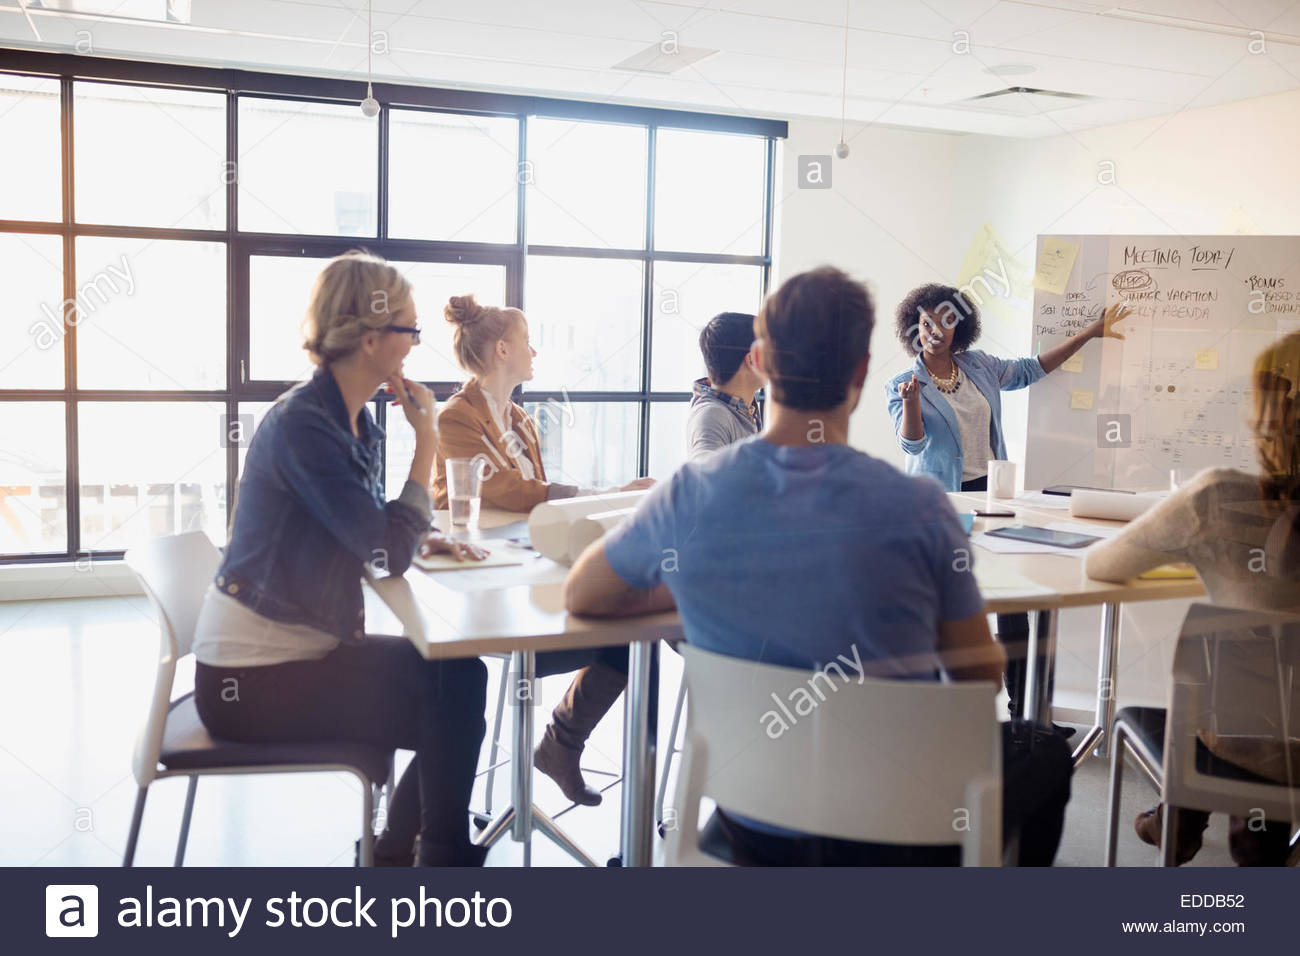 Businesswoman At Whiteboard Leading Meeting In Conference Room Stock - Whiteboard conference table